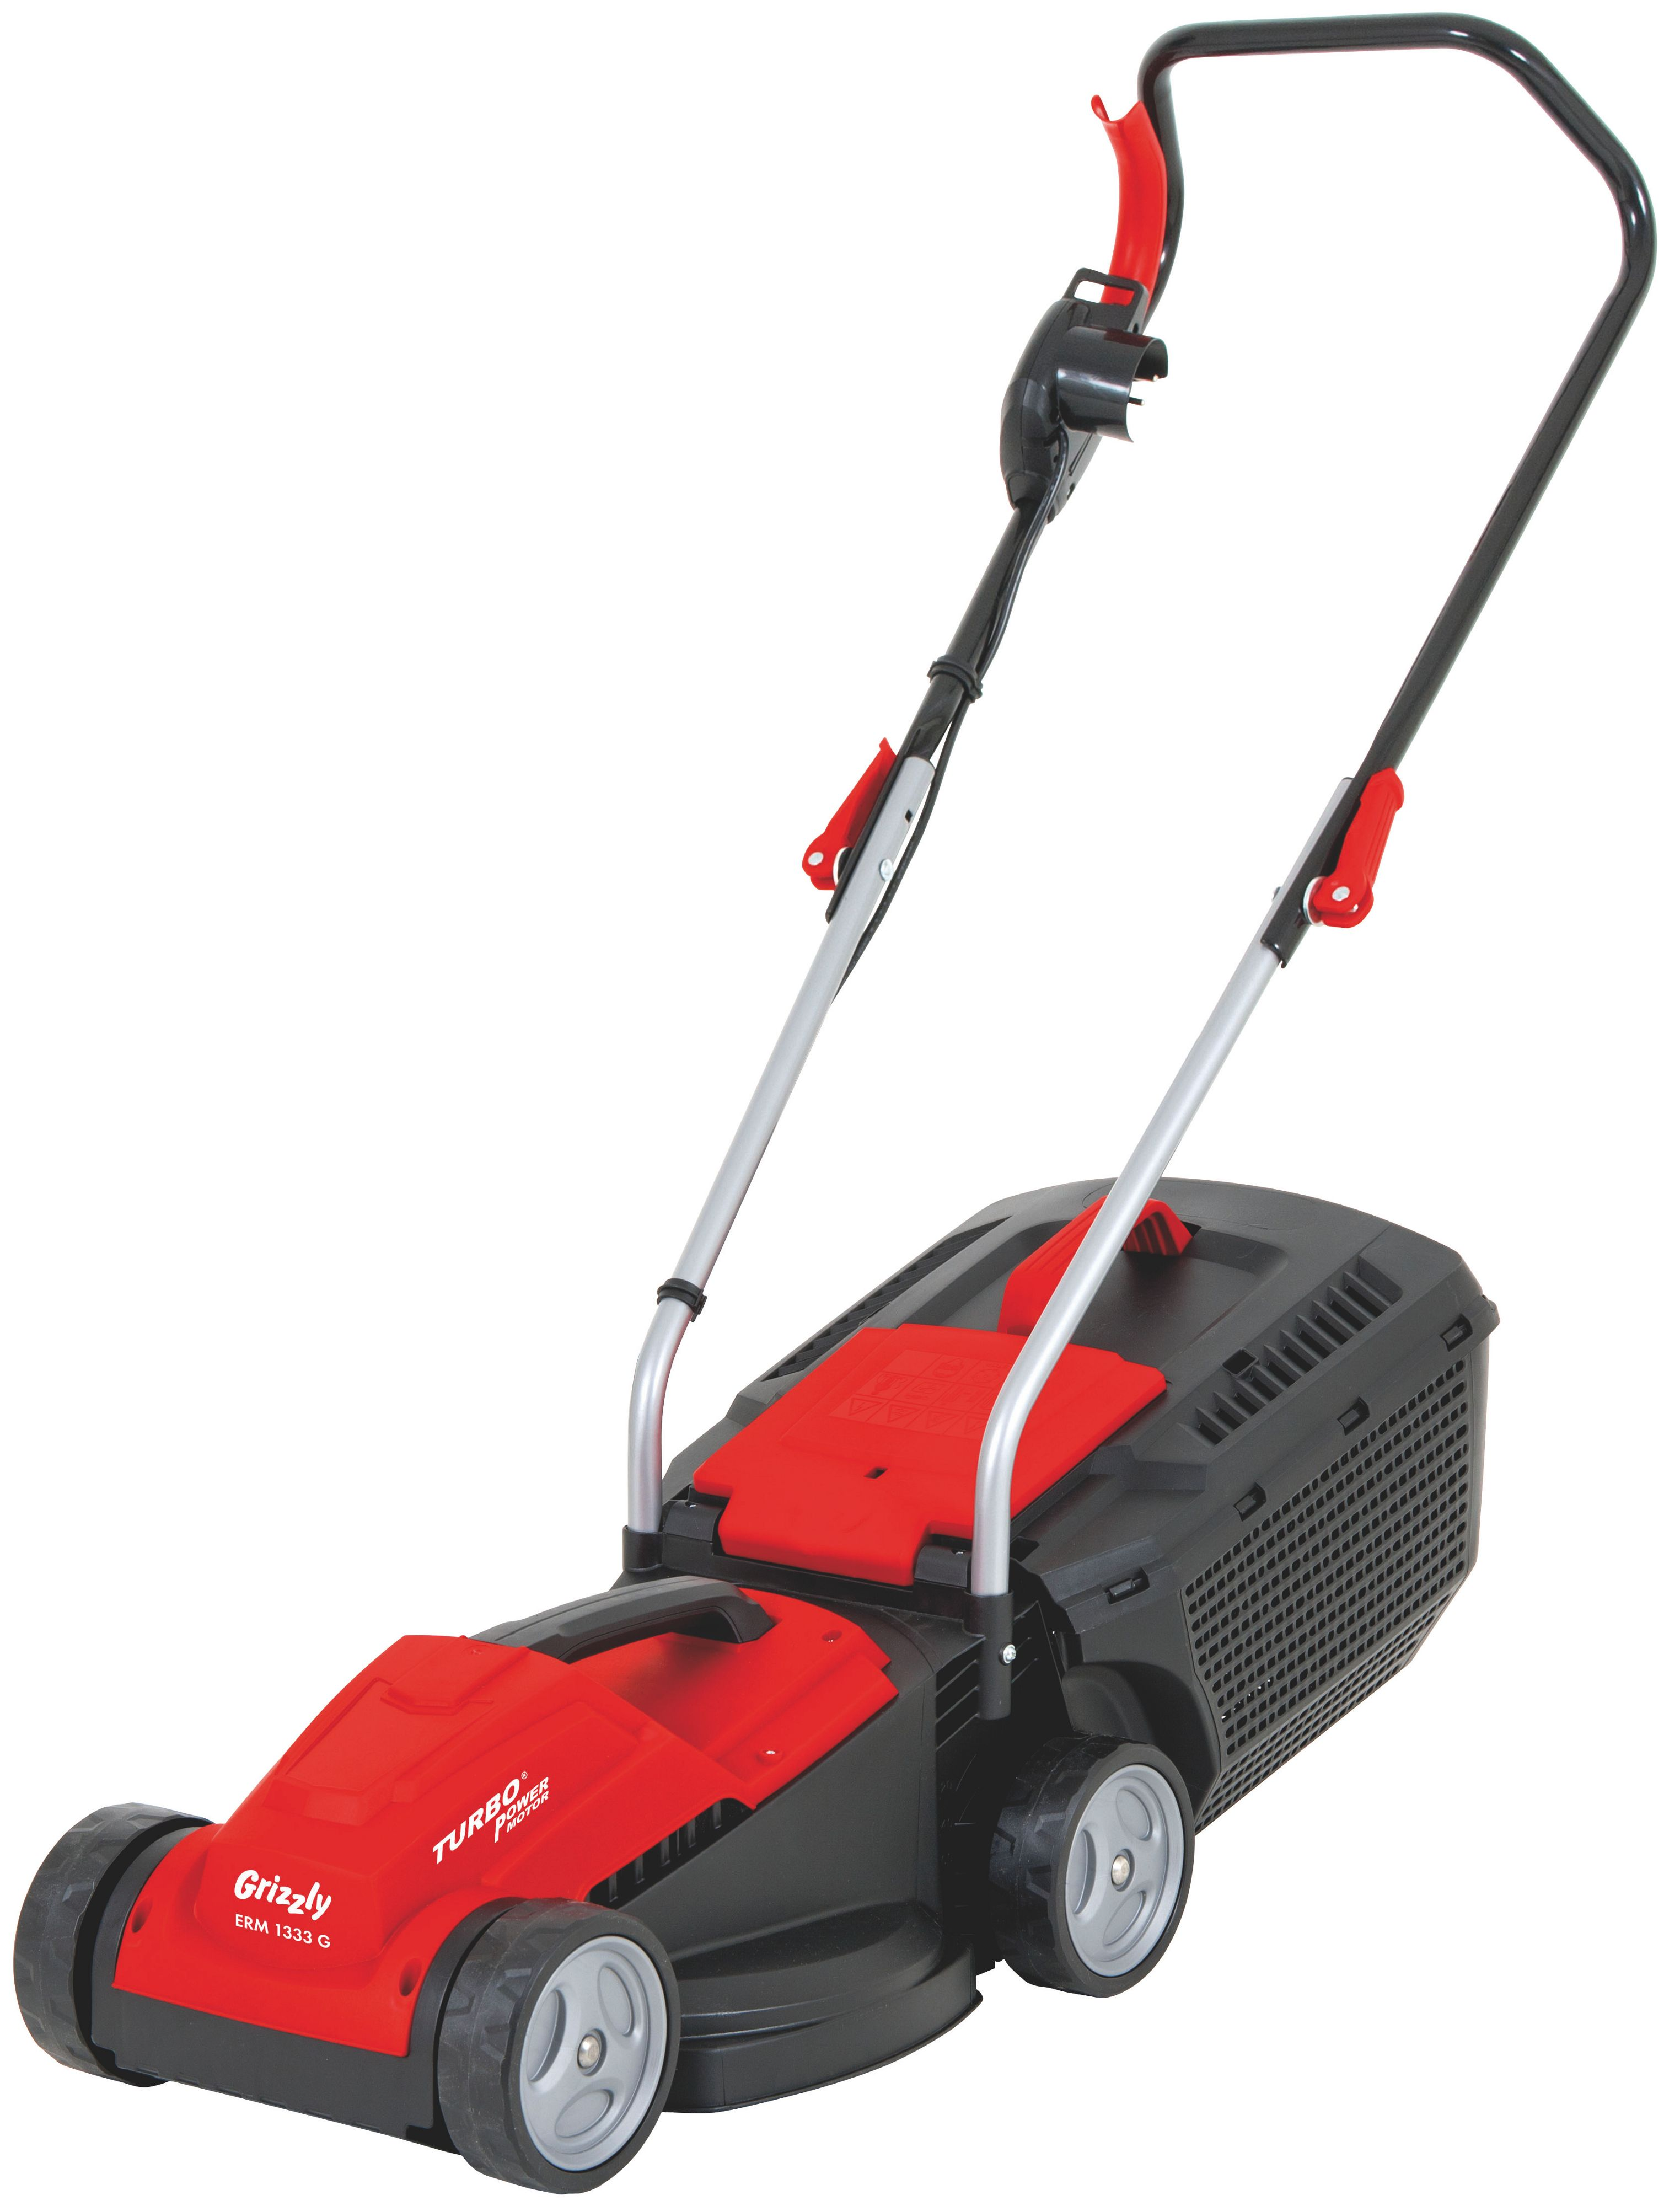 Image of Grizzly Electric lawn mower